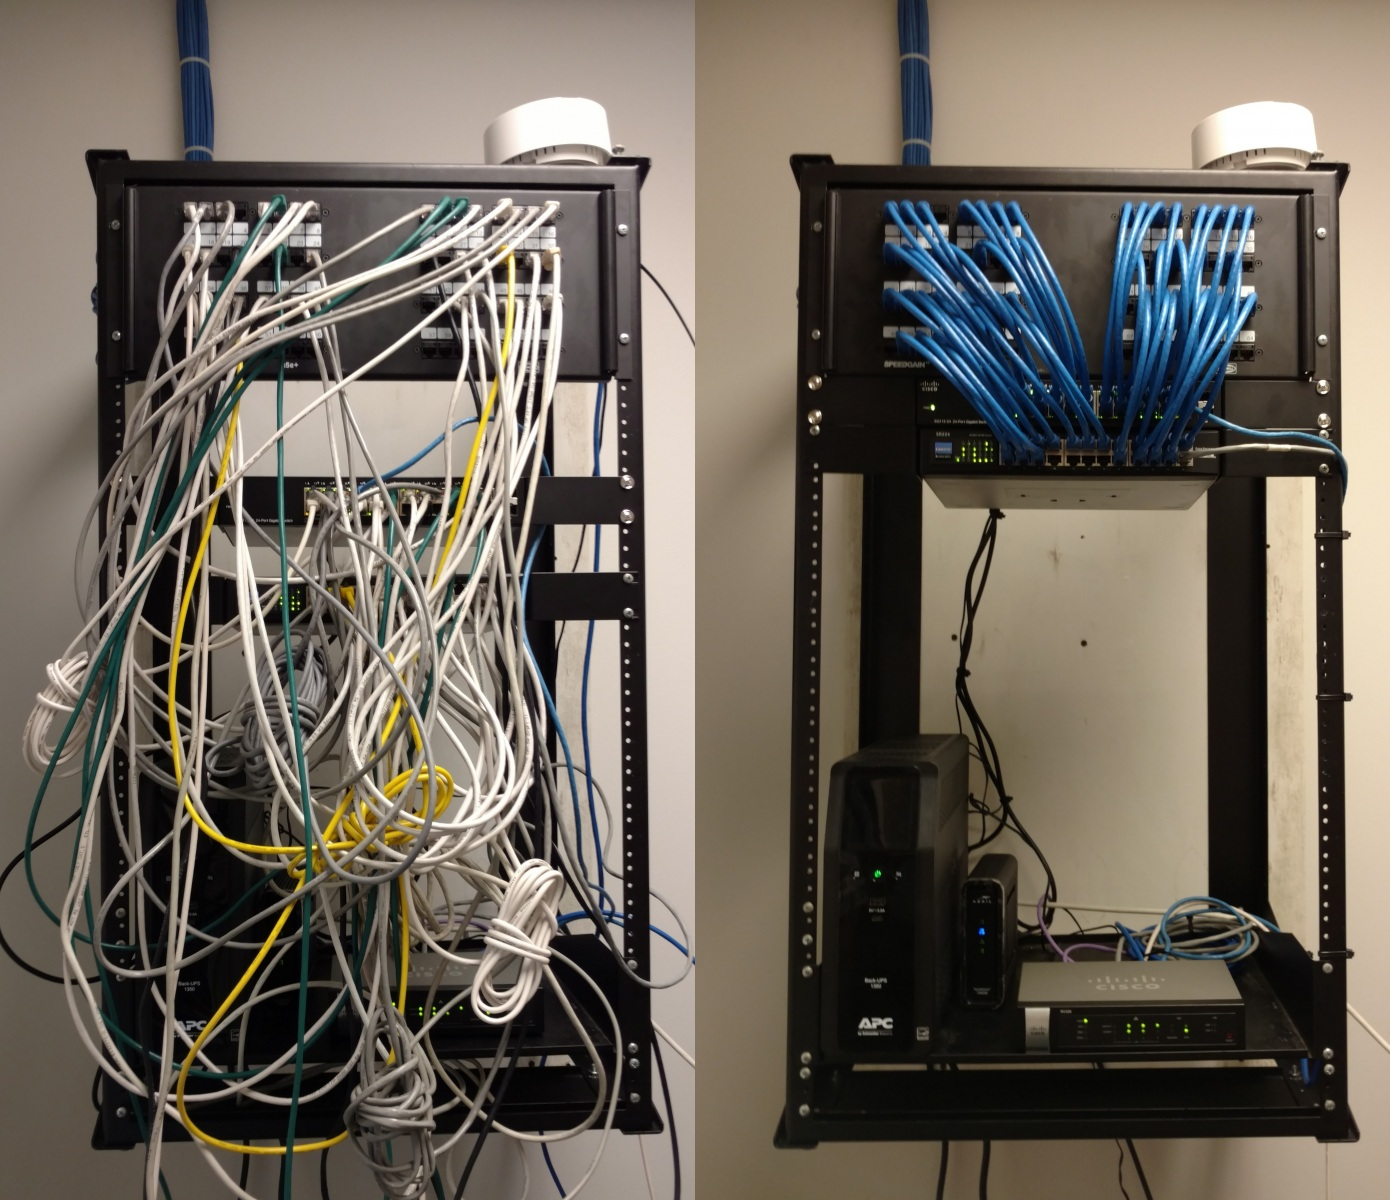 Cleaning up a server rack | Newport News, VA